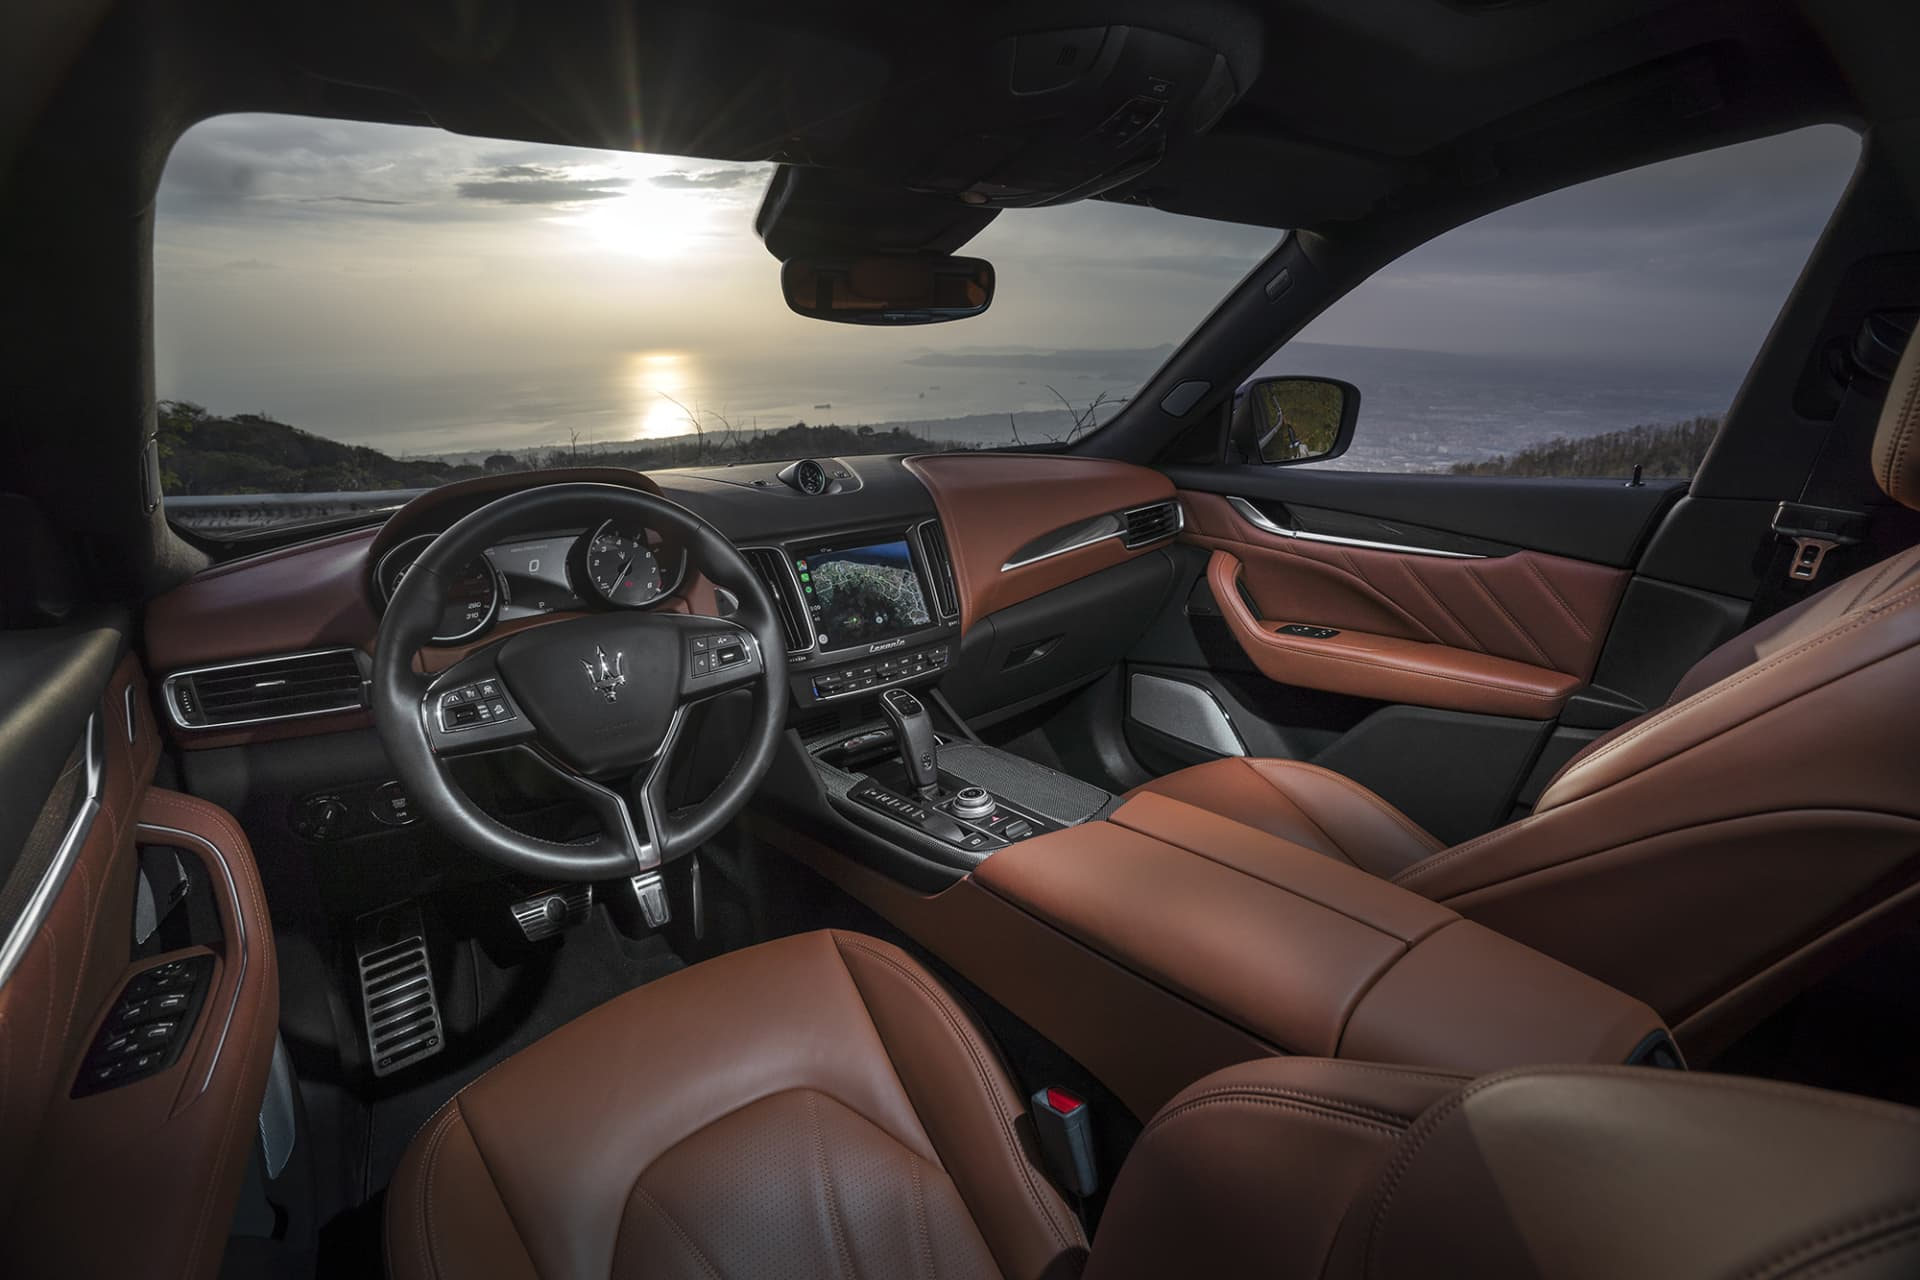 The interior of Levante S is tastefully blended with leather, alcantara and carbon fiber. Luxurious, sporty, and stylish!